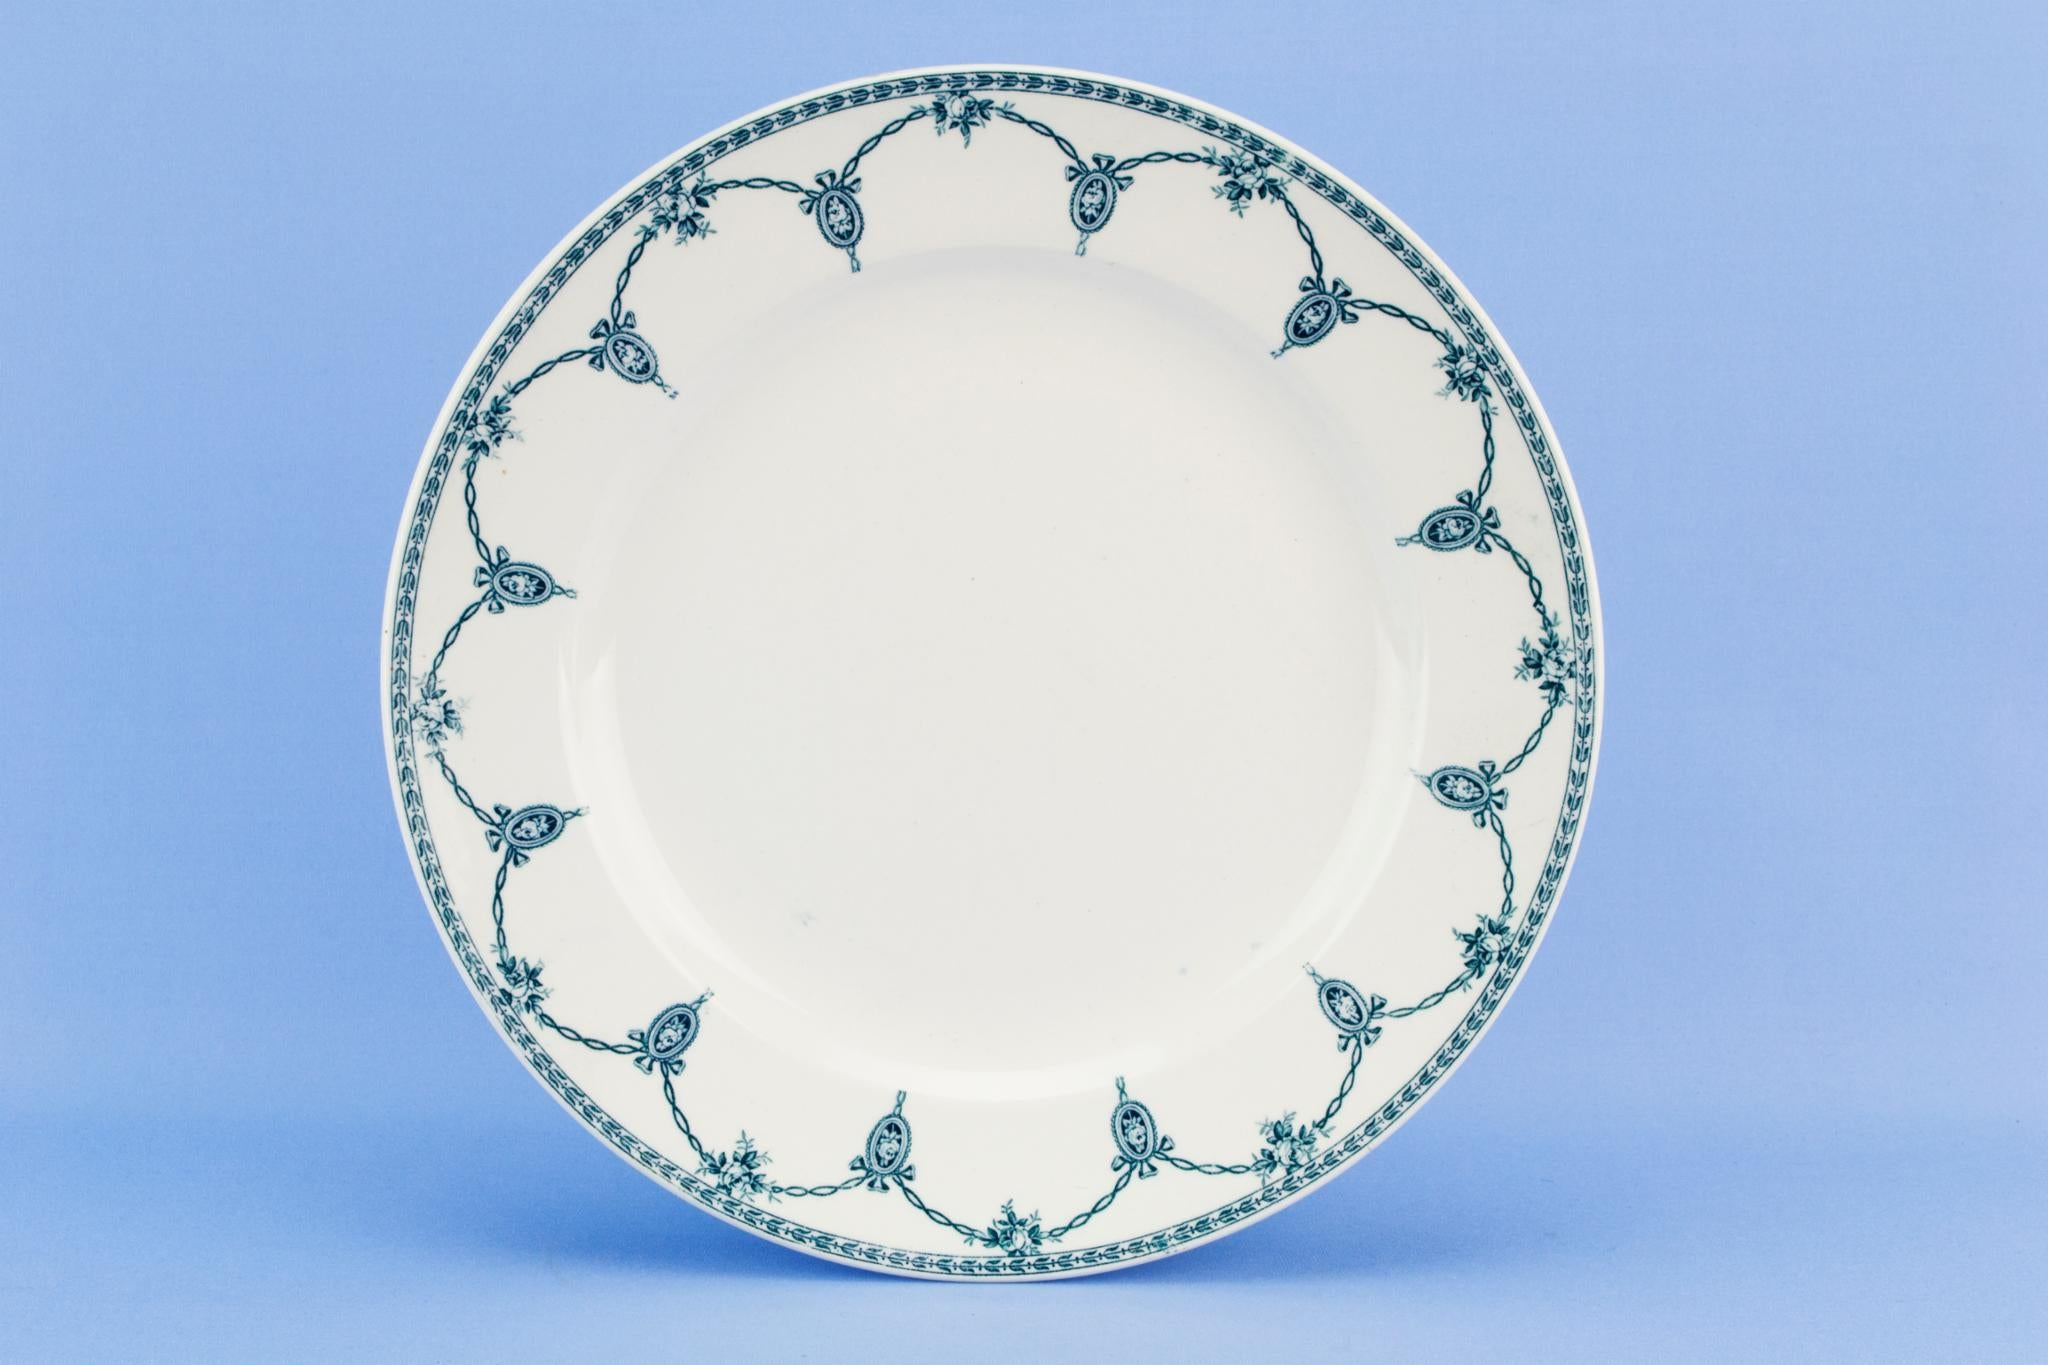 5 Blue and white dinner plated Losol ware, English 1920s